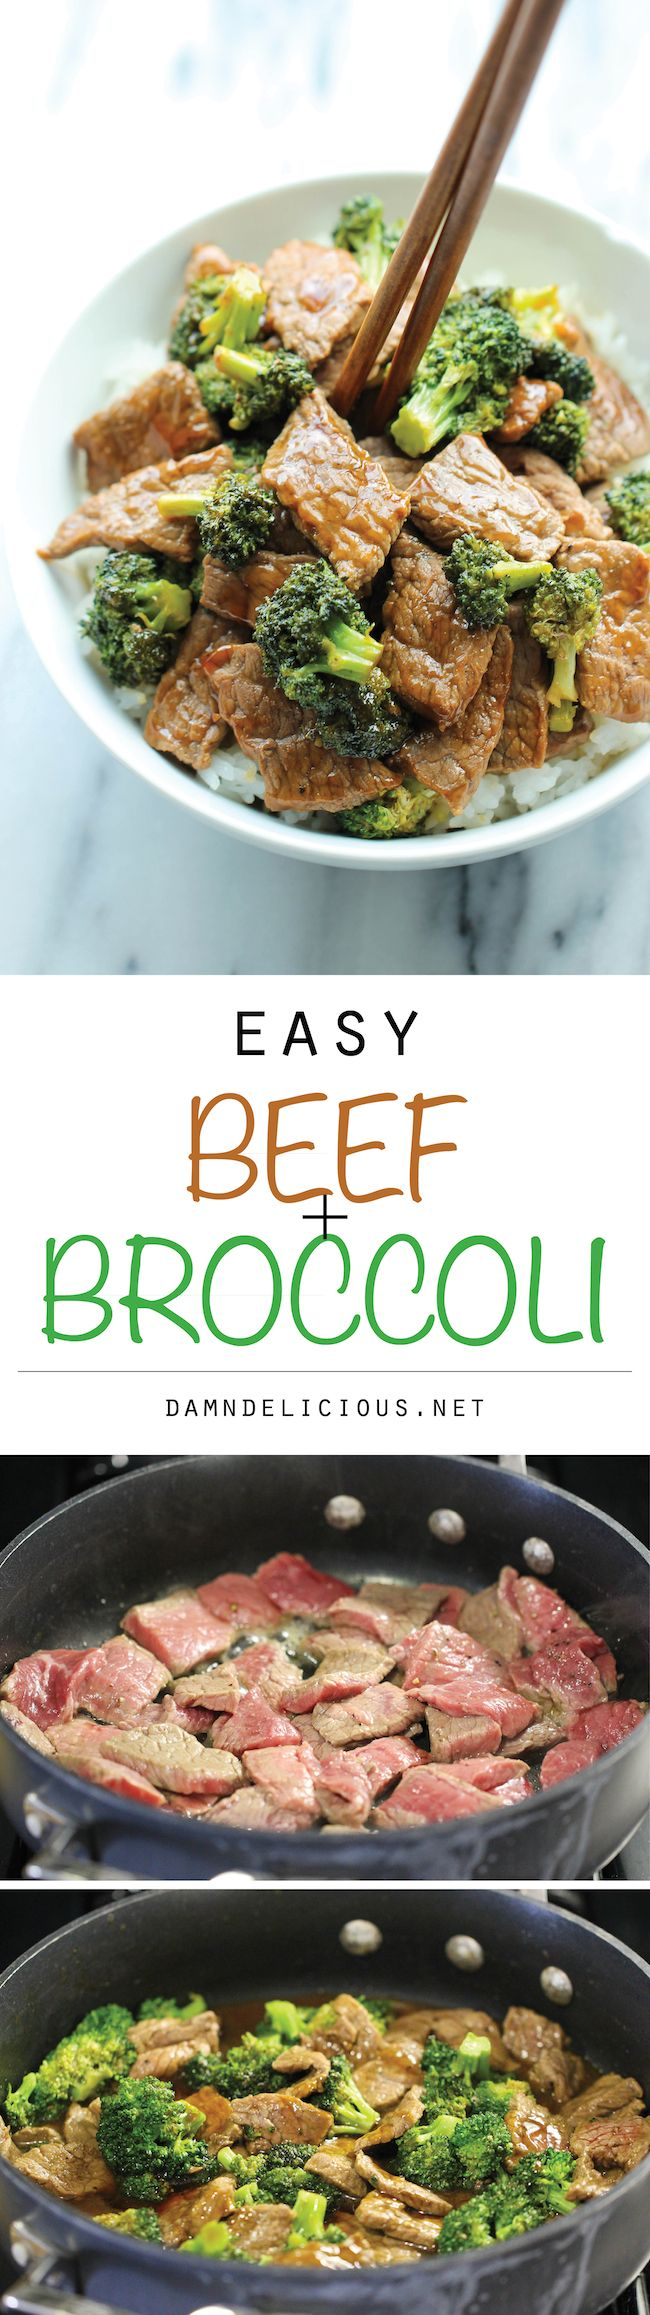 Easy Beef and Broccoli - The BEST beef and broccoli made in 15 min from start to finish. And yes, it's quicker, cheaper and healthier than take-out!